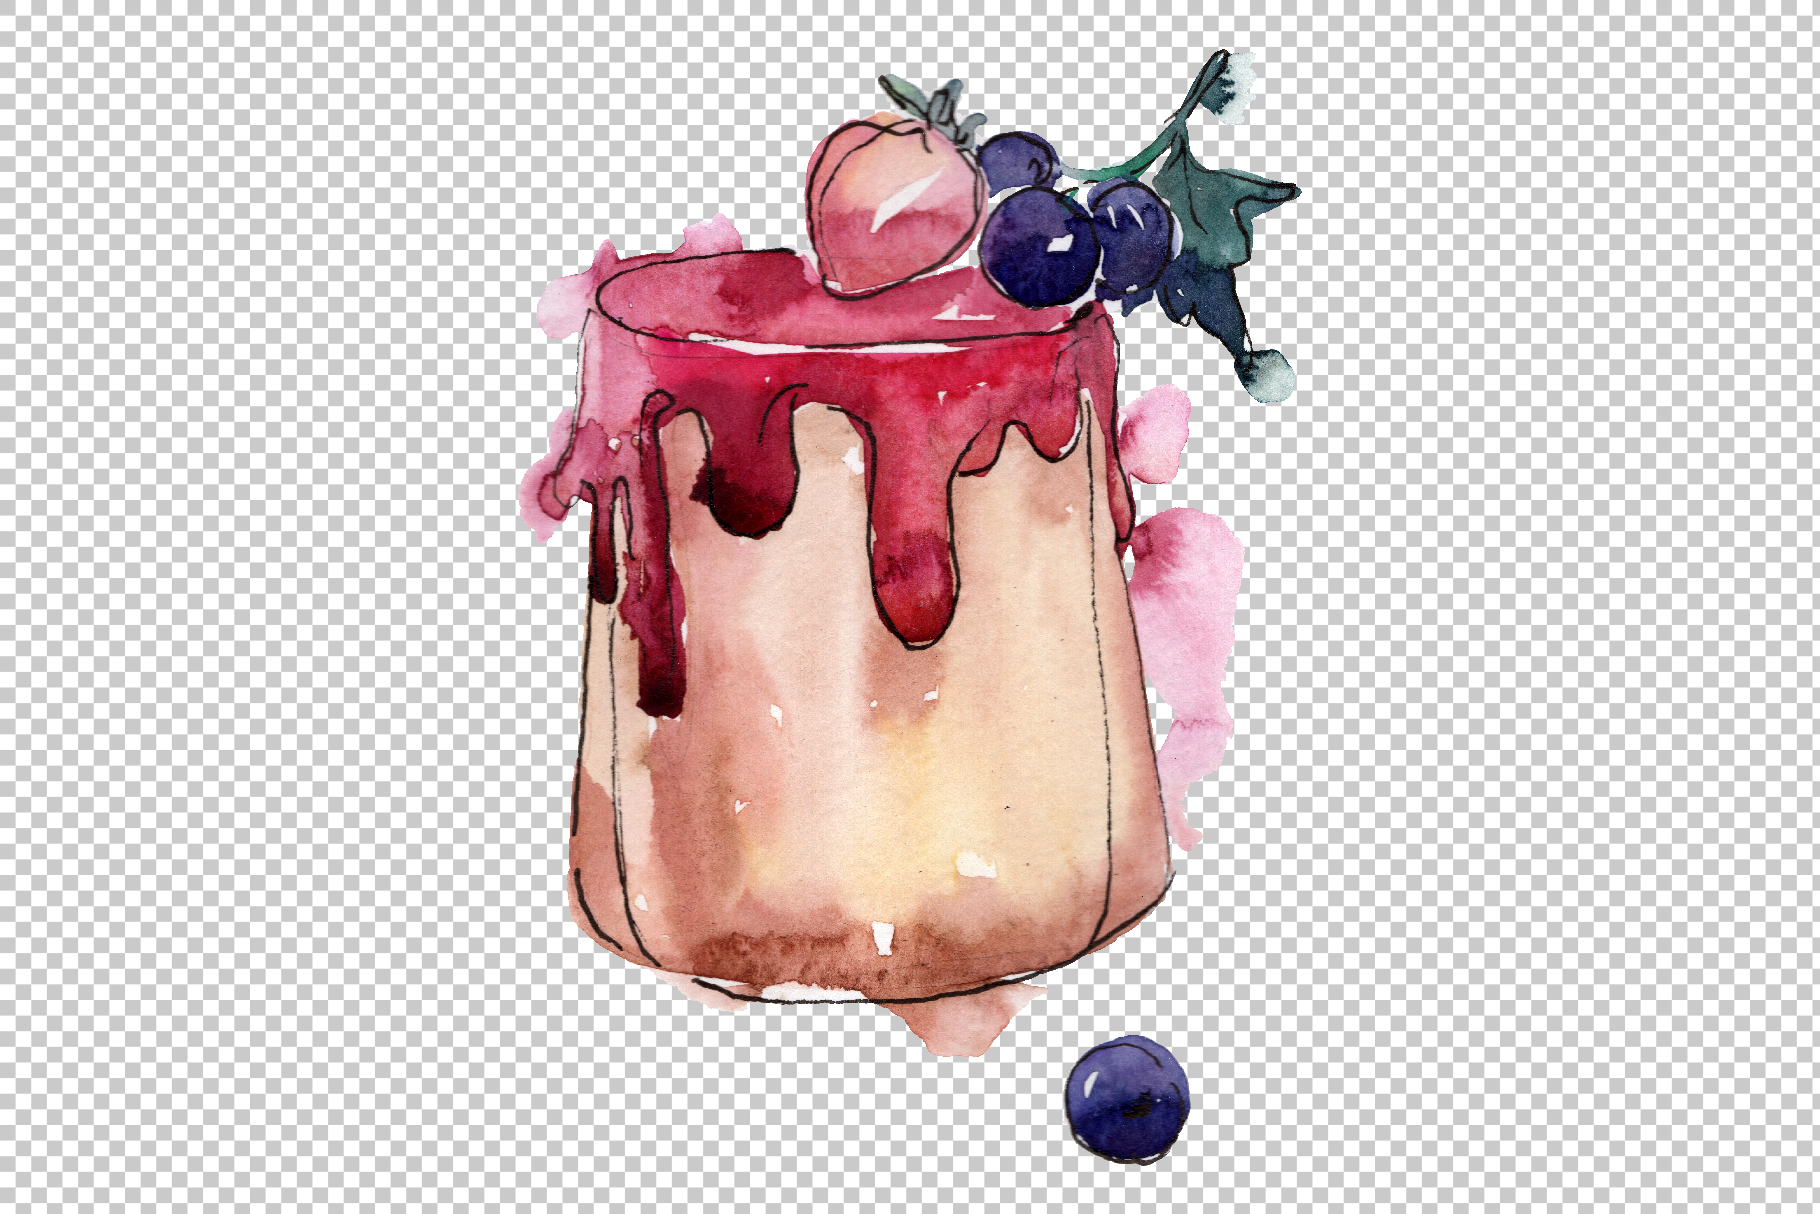 Dessert Love story Watercolor png example image 3